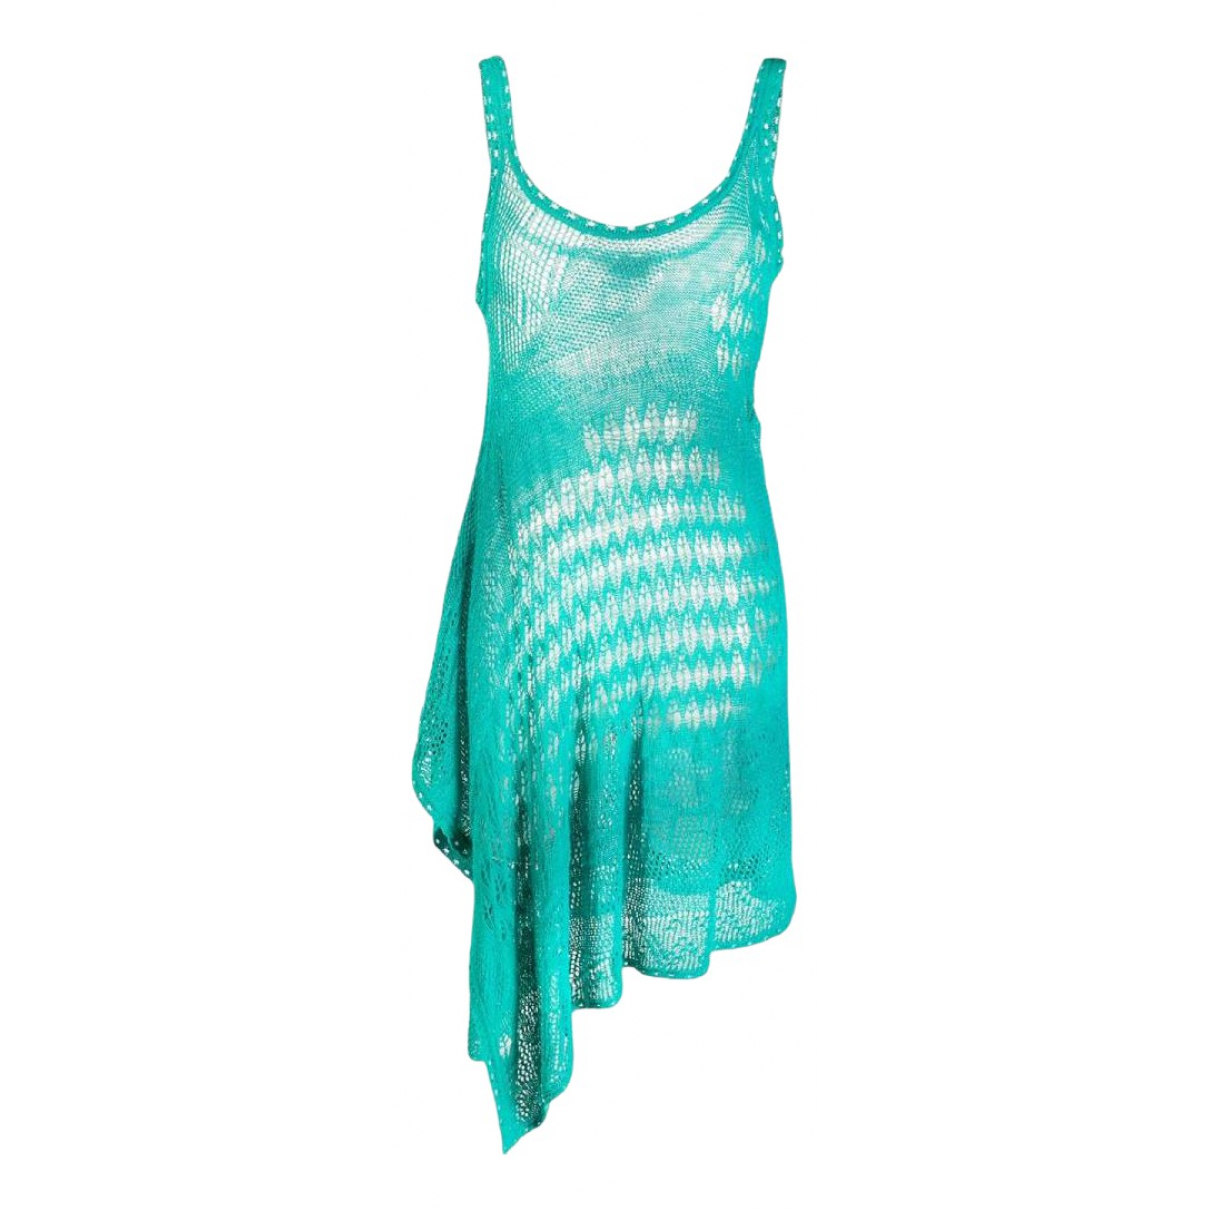 Missoni \N Turquoise Cotton  top for Women 40 IT